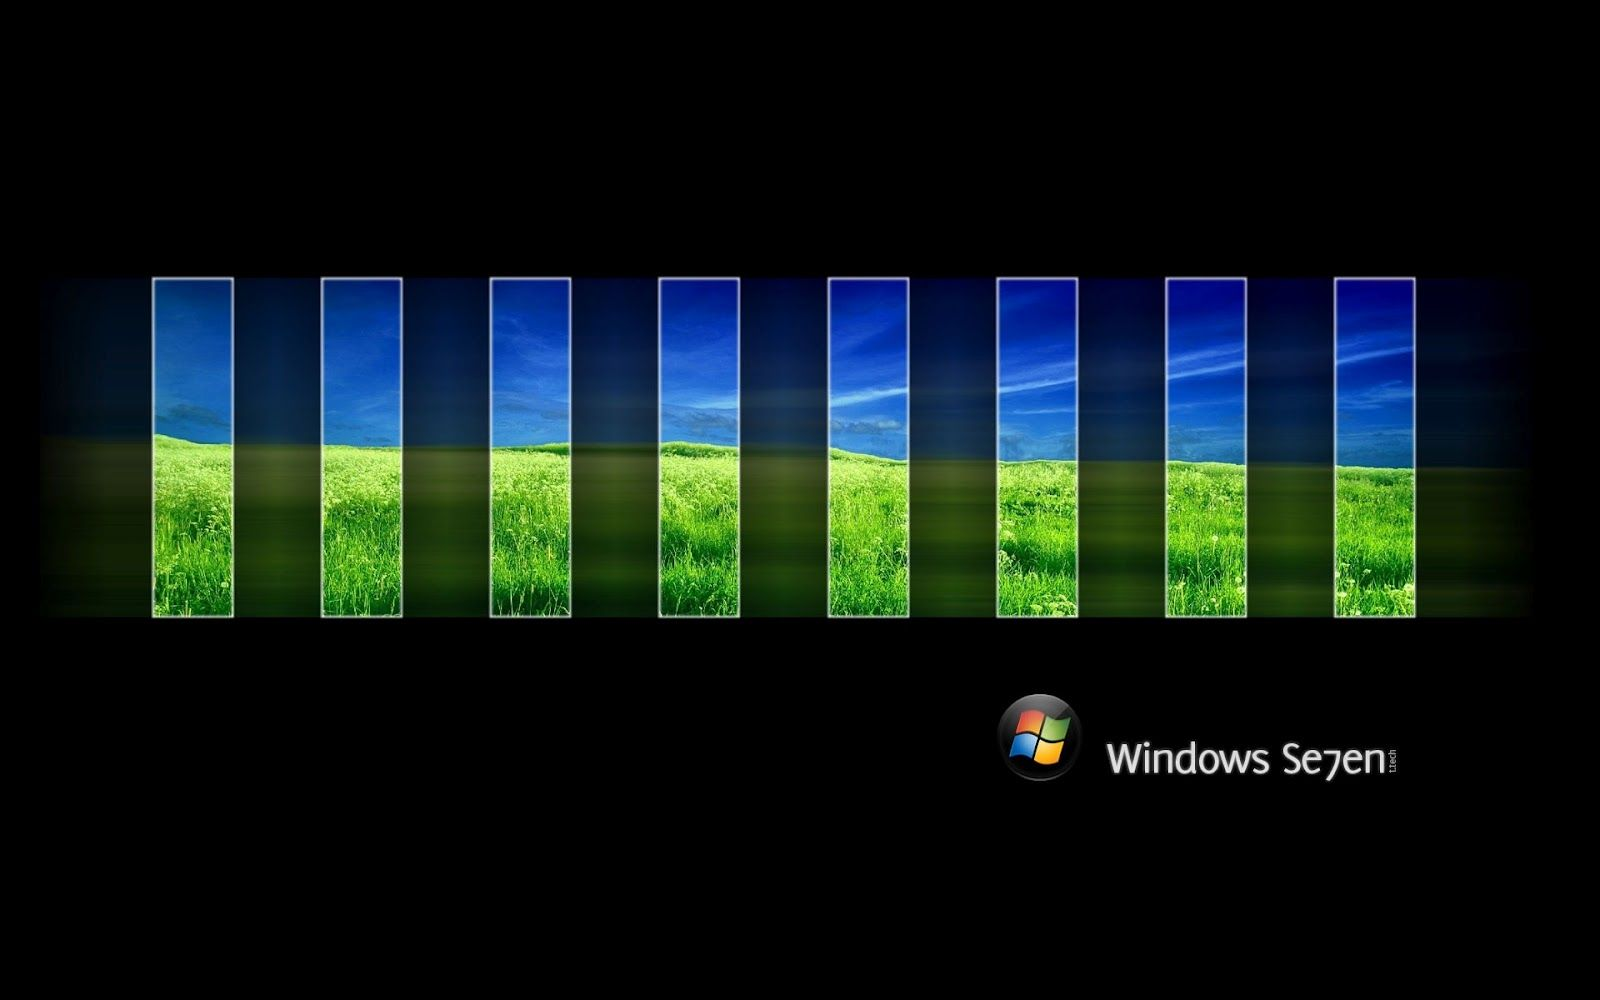 Are You Looking For Windows 7 Desktop Hd Wallpapers Download Latest